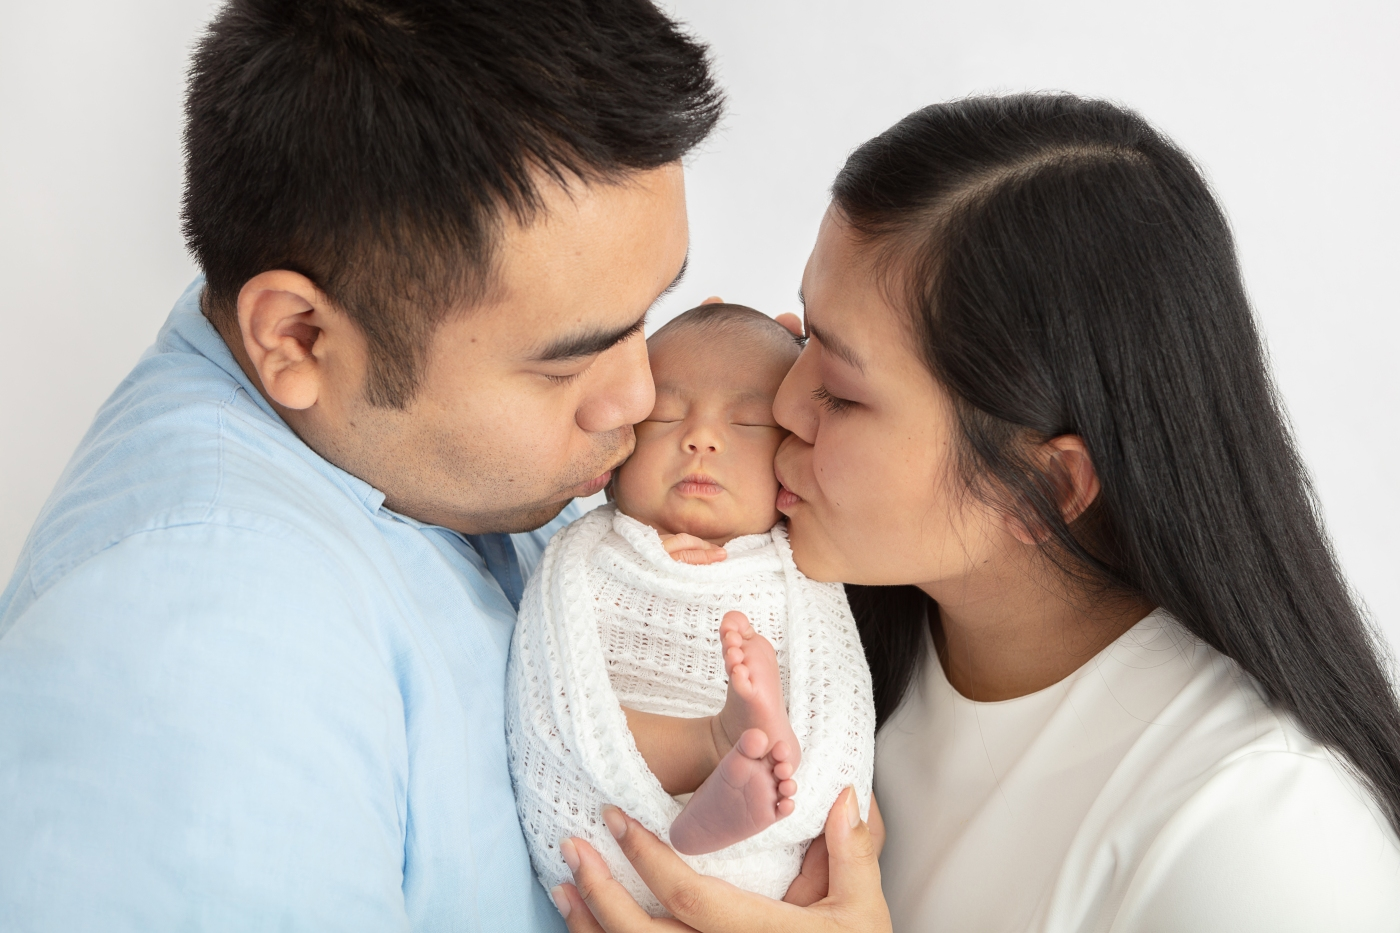 newborn baby wrapped in textured white fabric nestled between mom and dad both kissing baby's cheeks in a loving new family scene